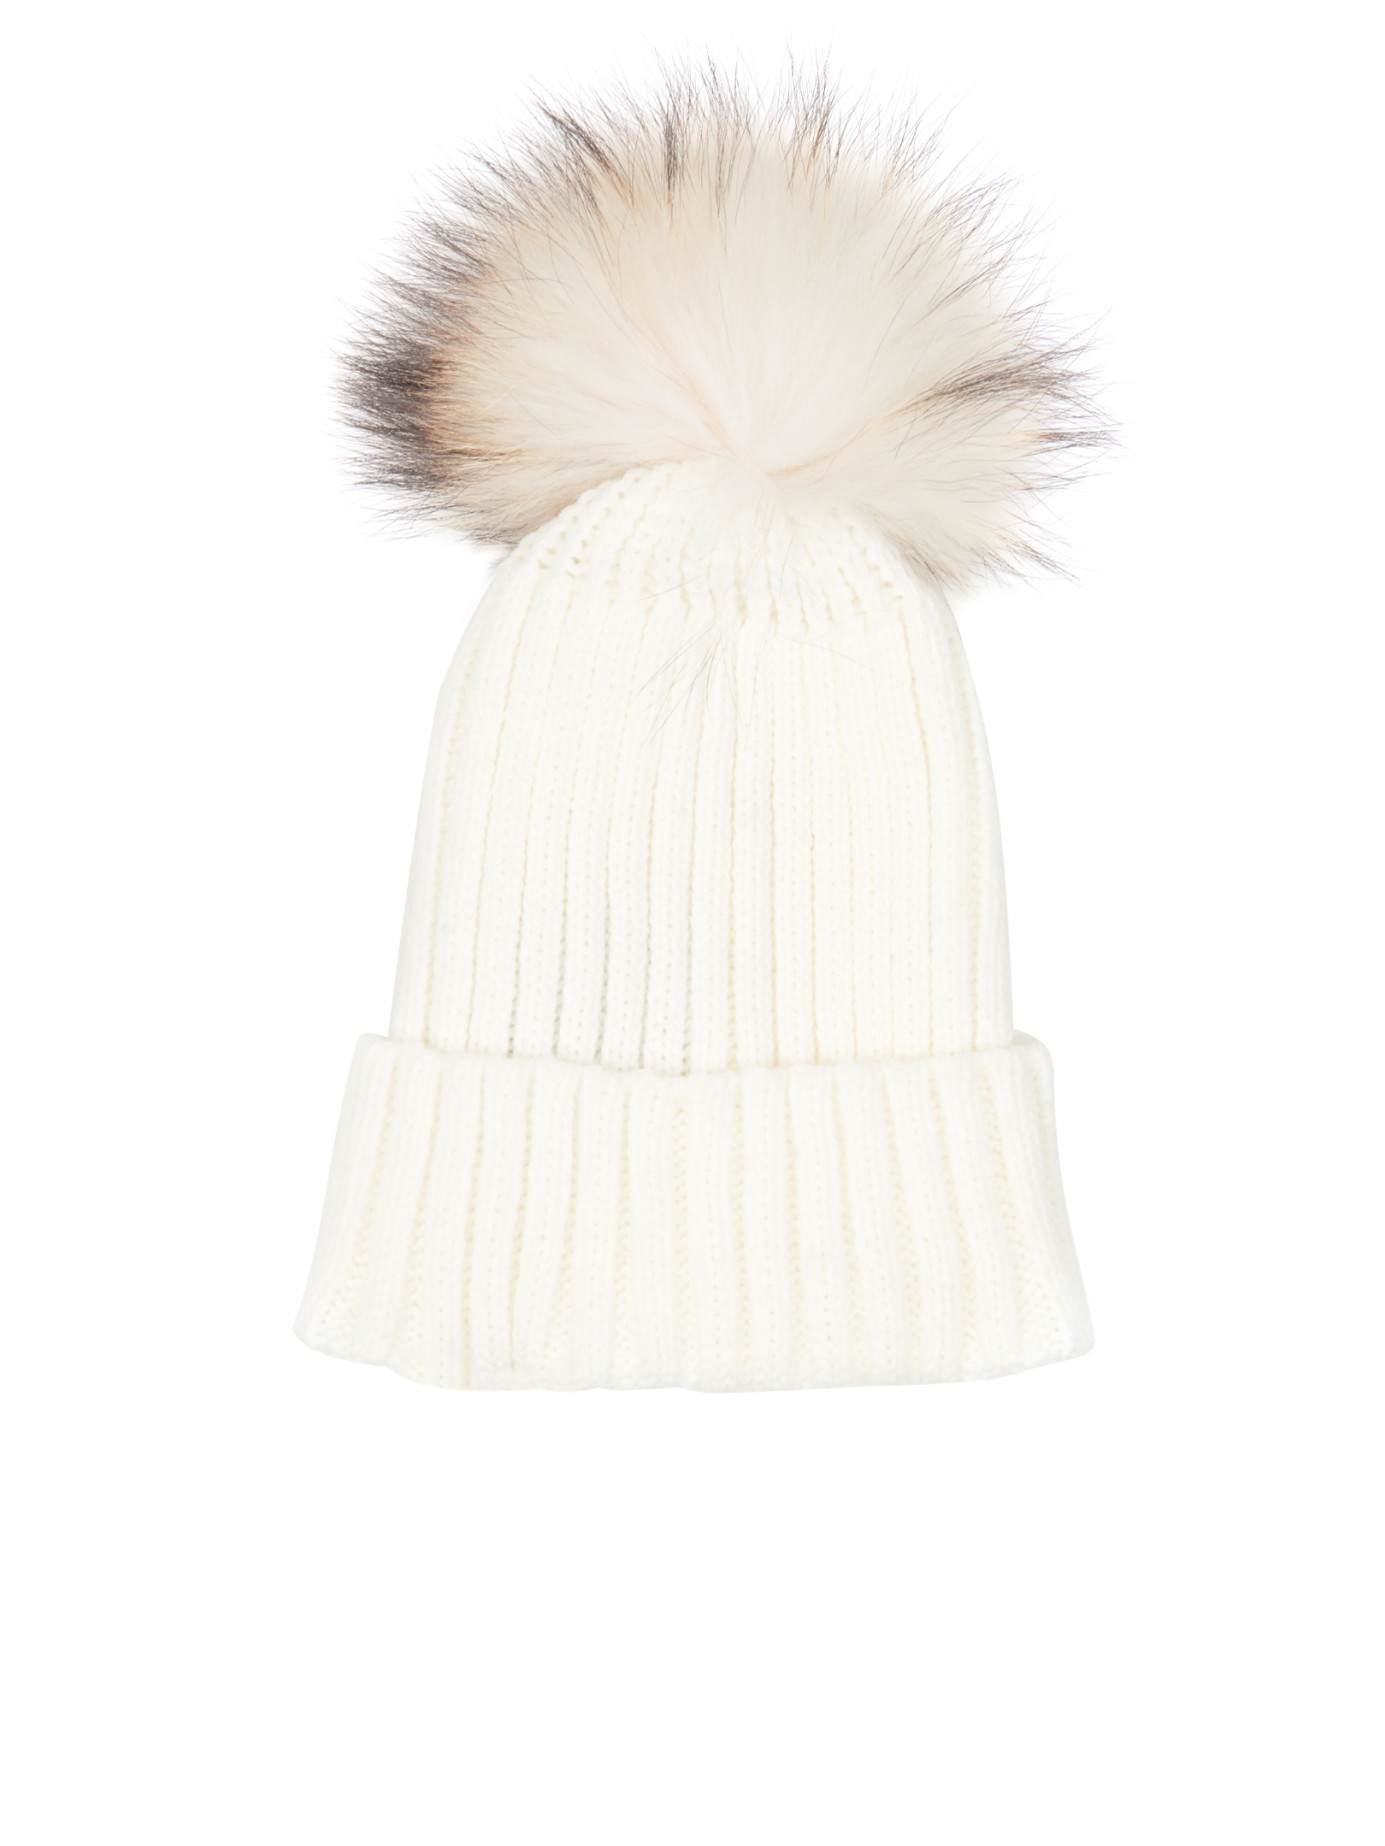 Lyst - Yves Salomon Fur-pompom Knit Beanie Hat in White 0ebec822dab